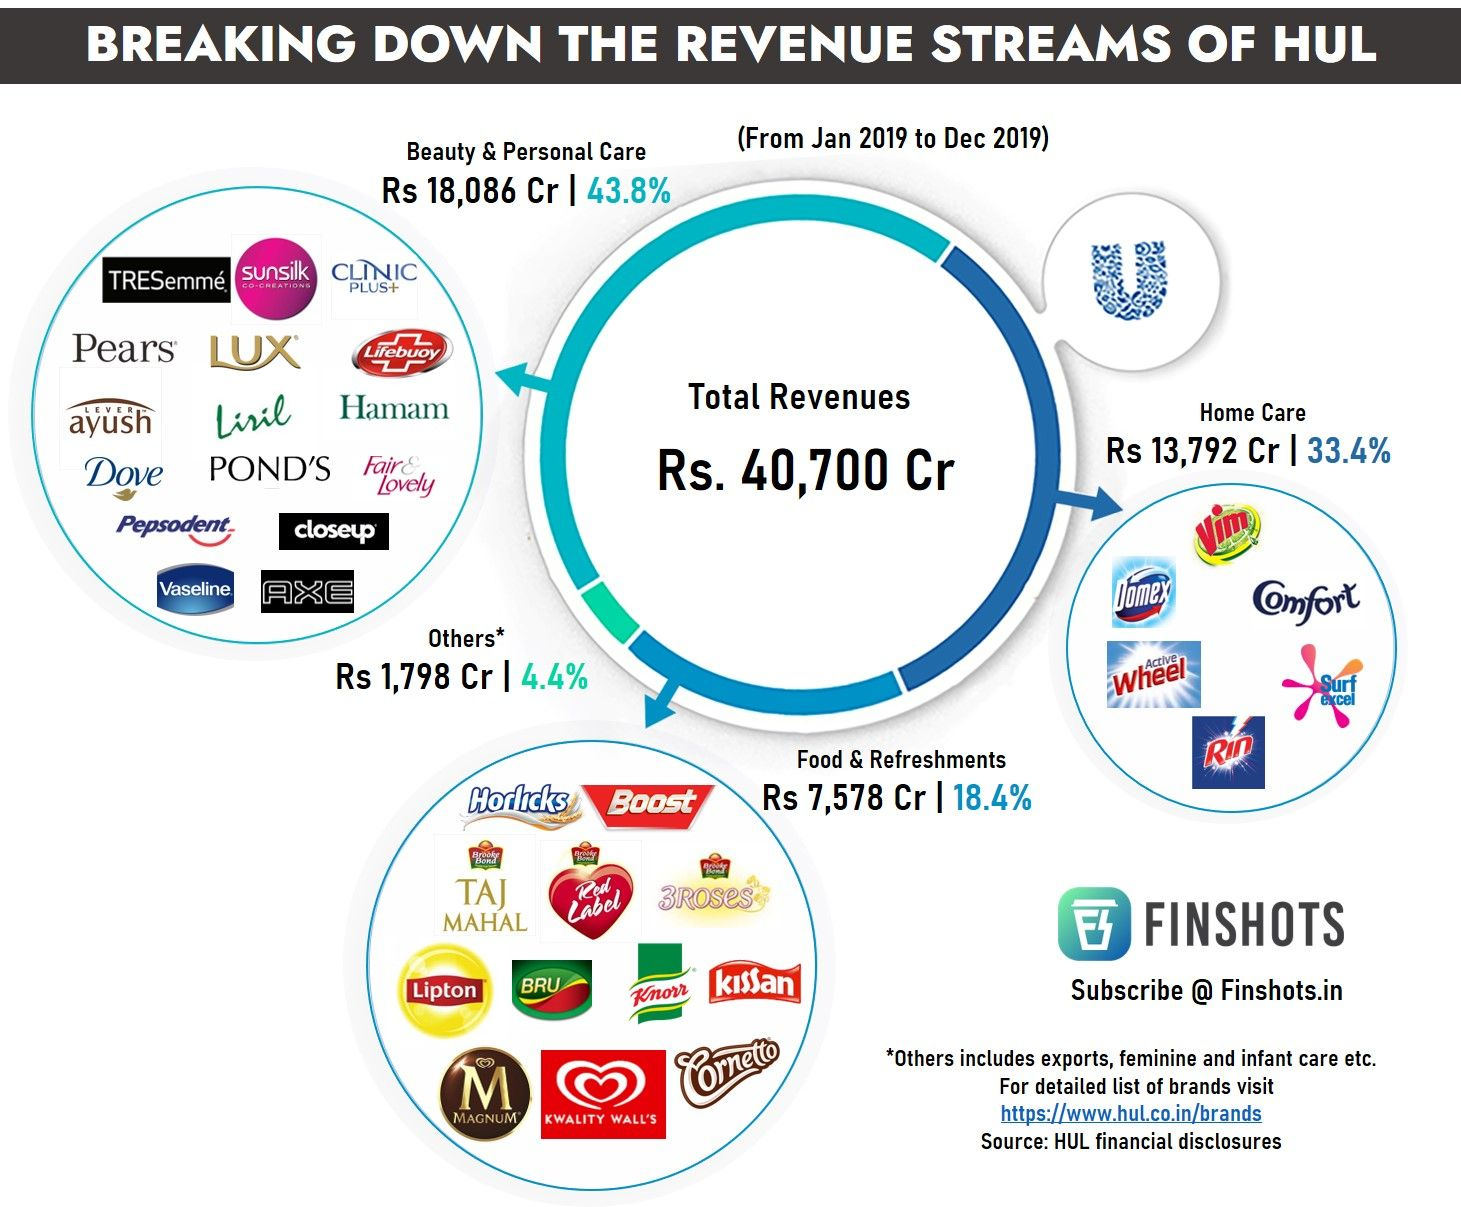 Breaking down revenue streams of HUL